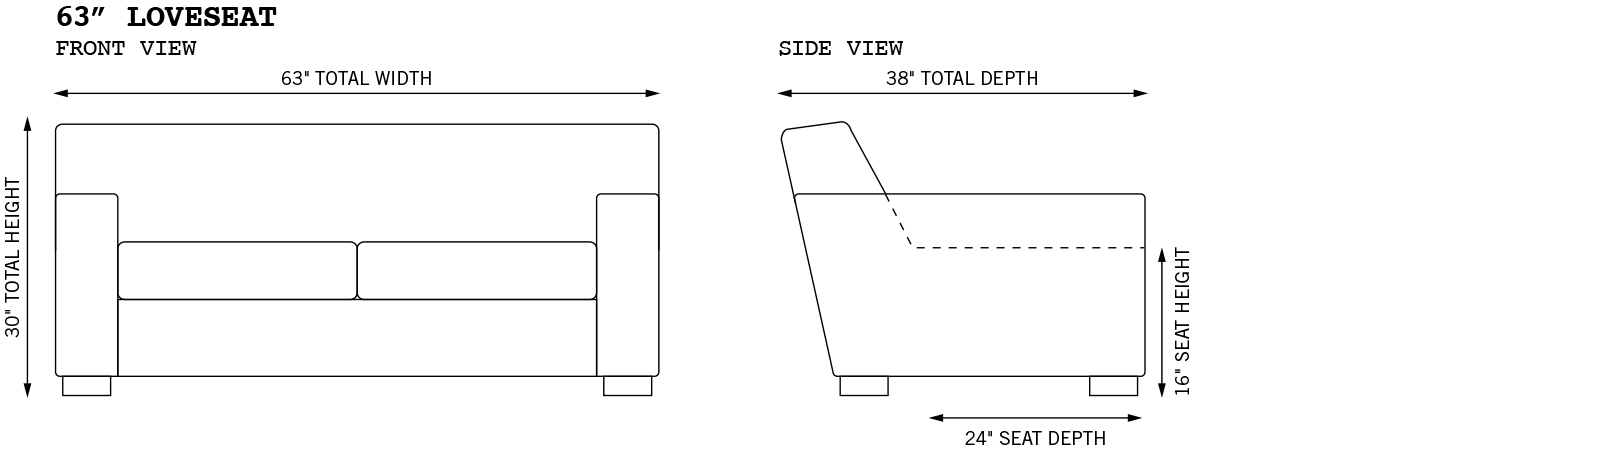 Bobby Loveseat Dimensions